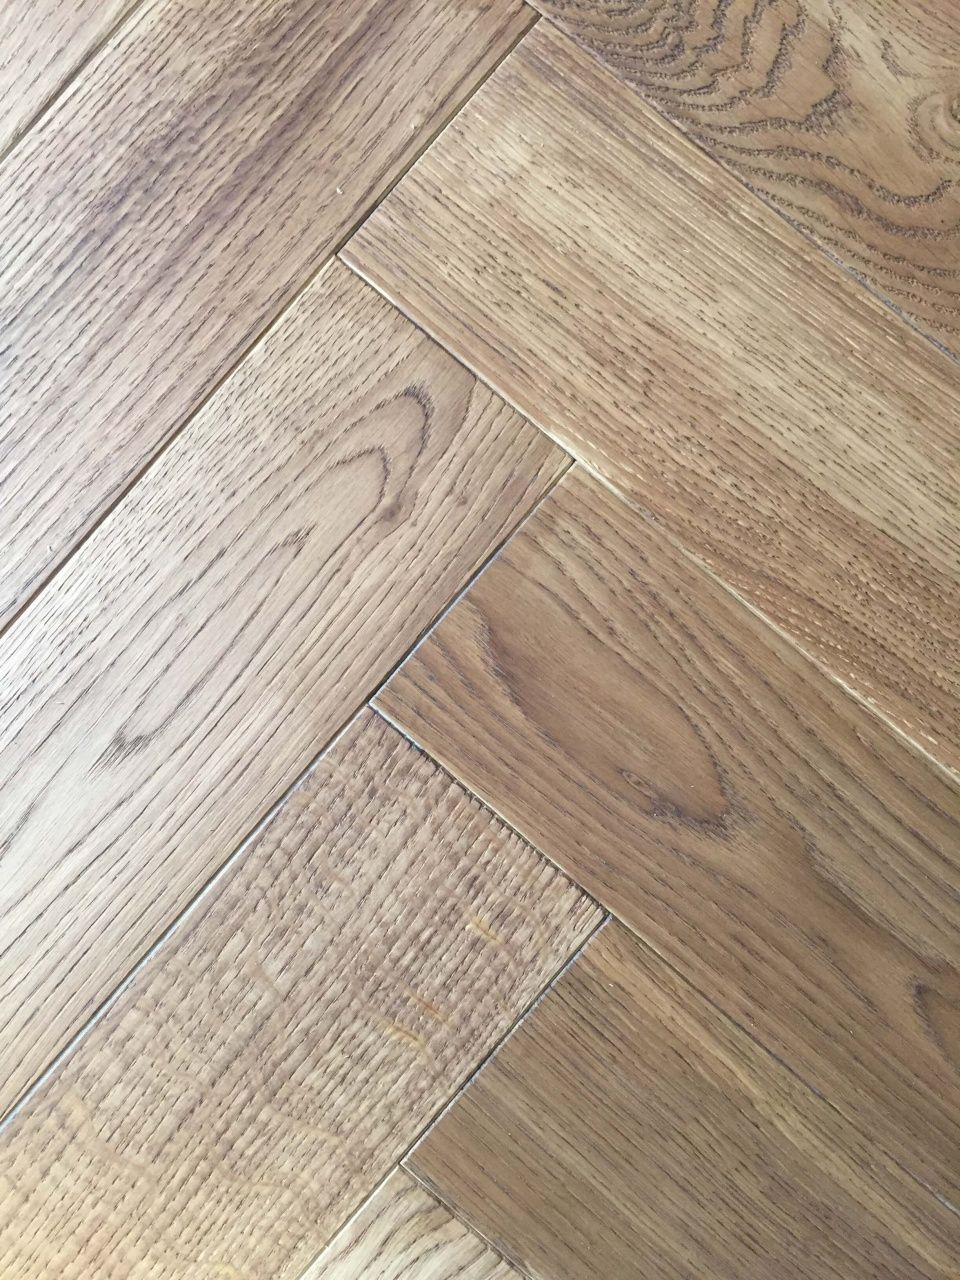 Install Vinyl Flooring Over Plywood Subfloor in 2020